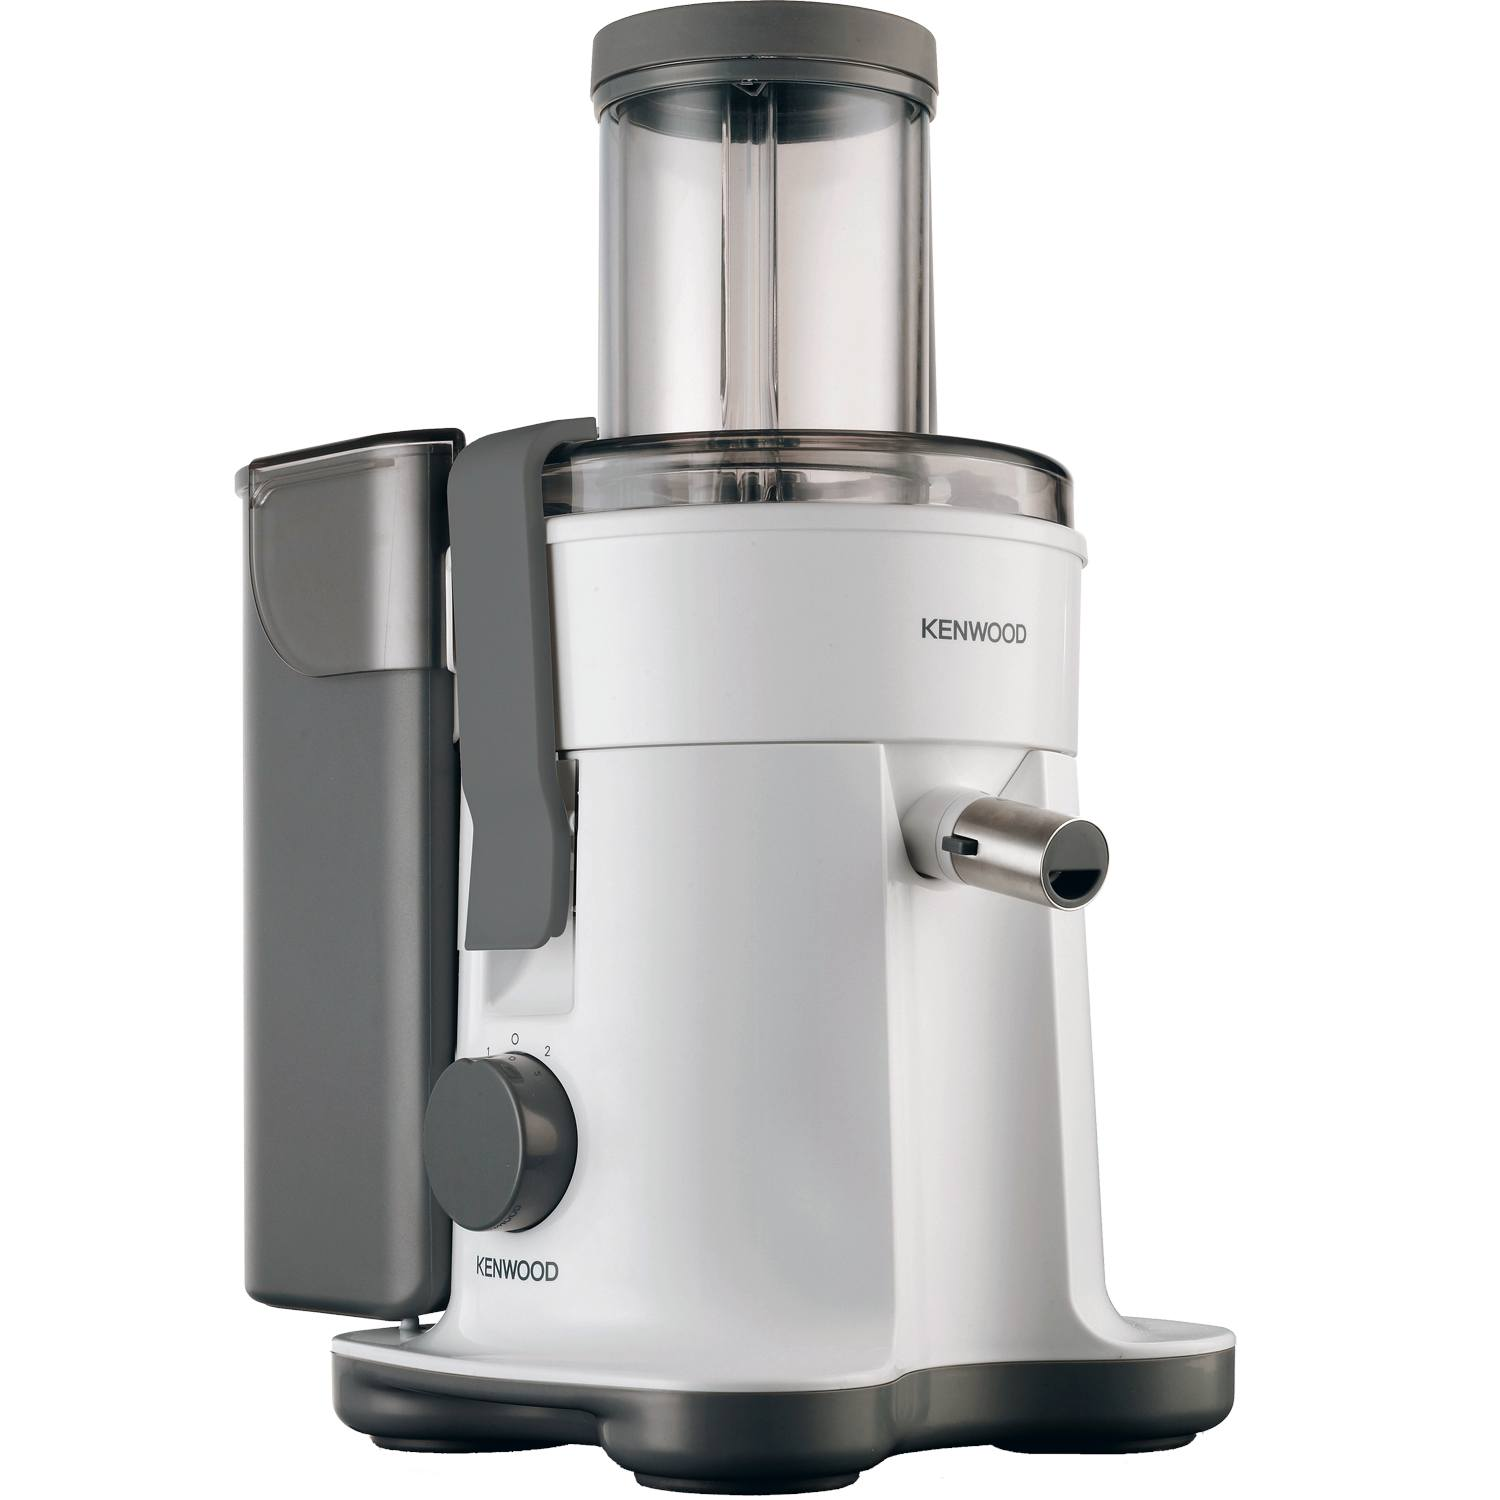 Centrifugal Coffee Maker : Kenwood je centrifugal plastic juicer with apex